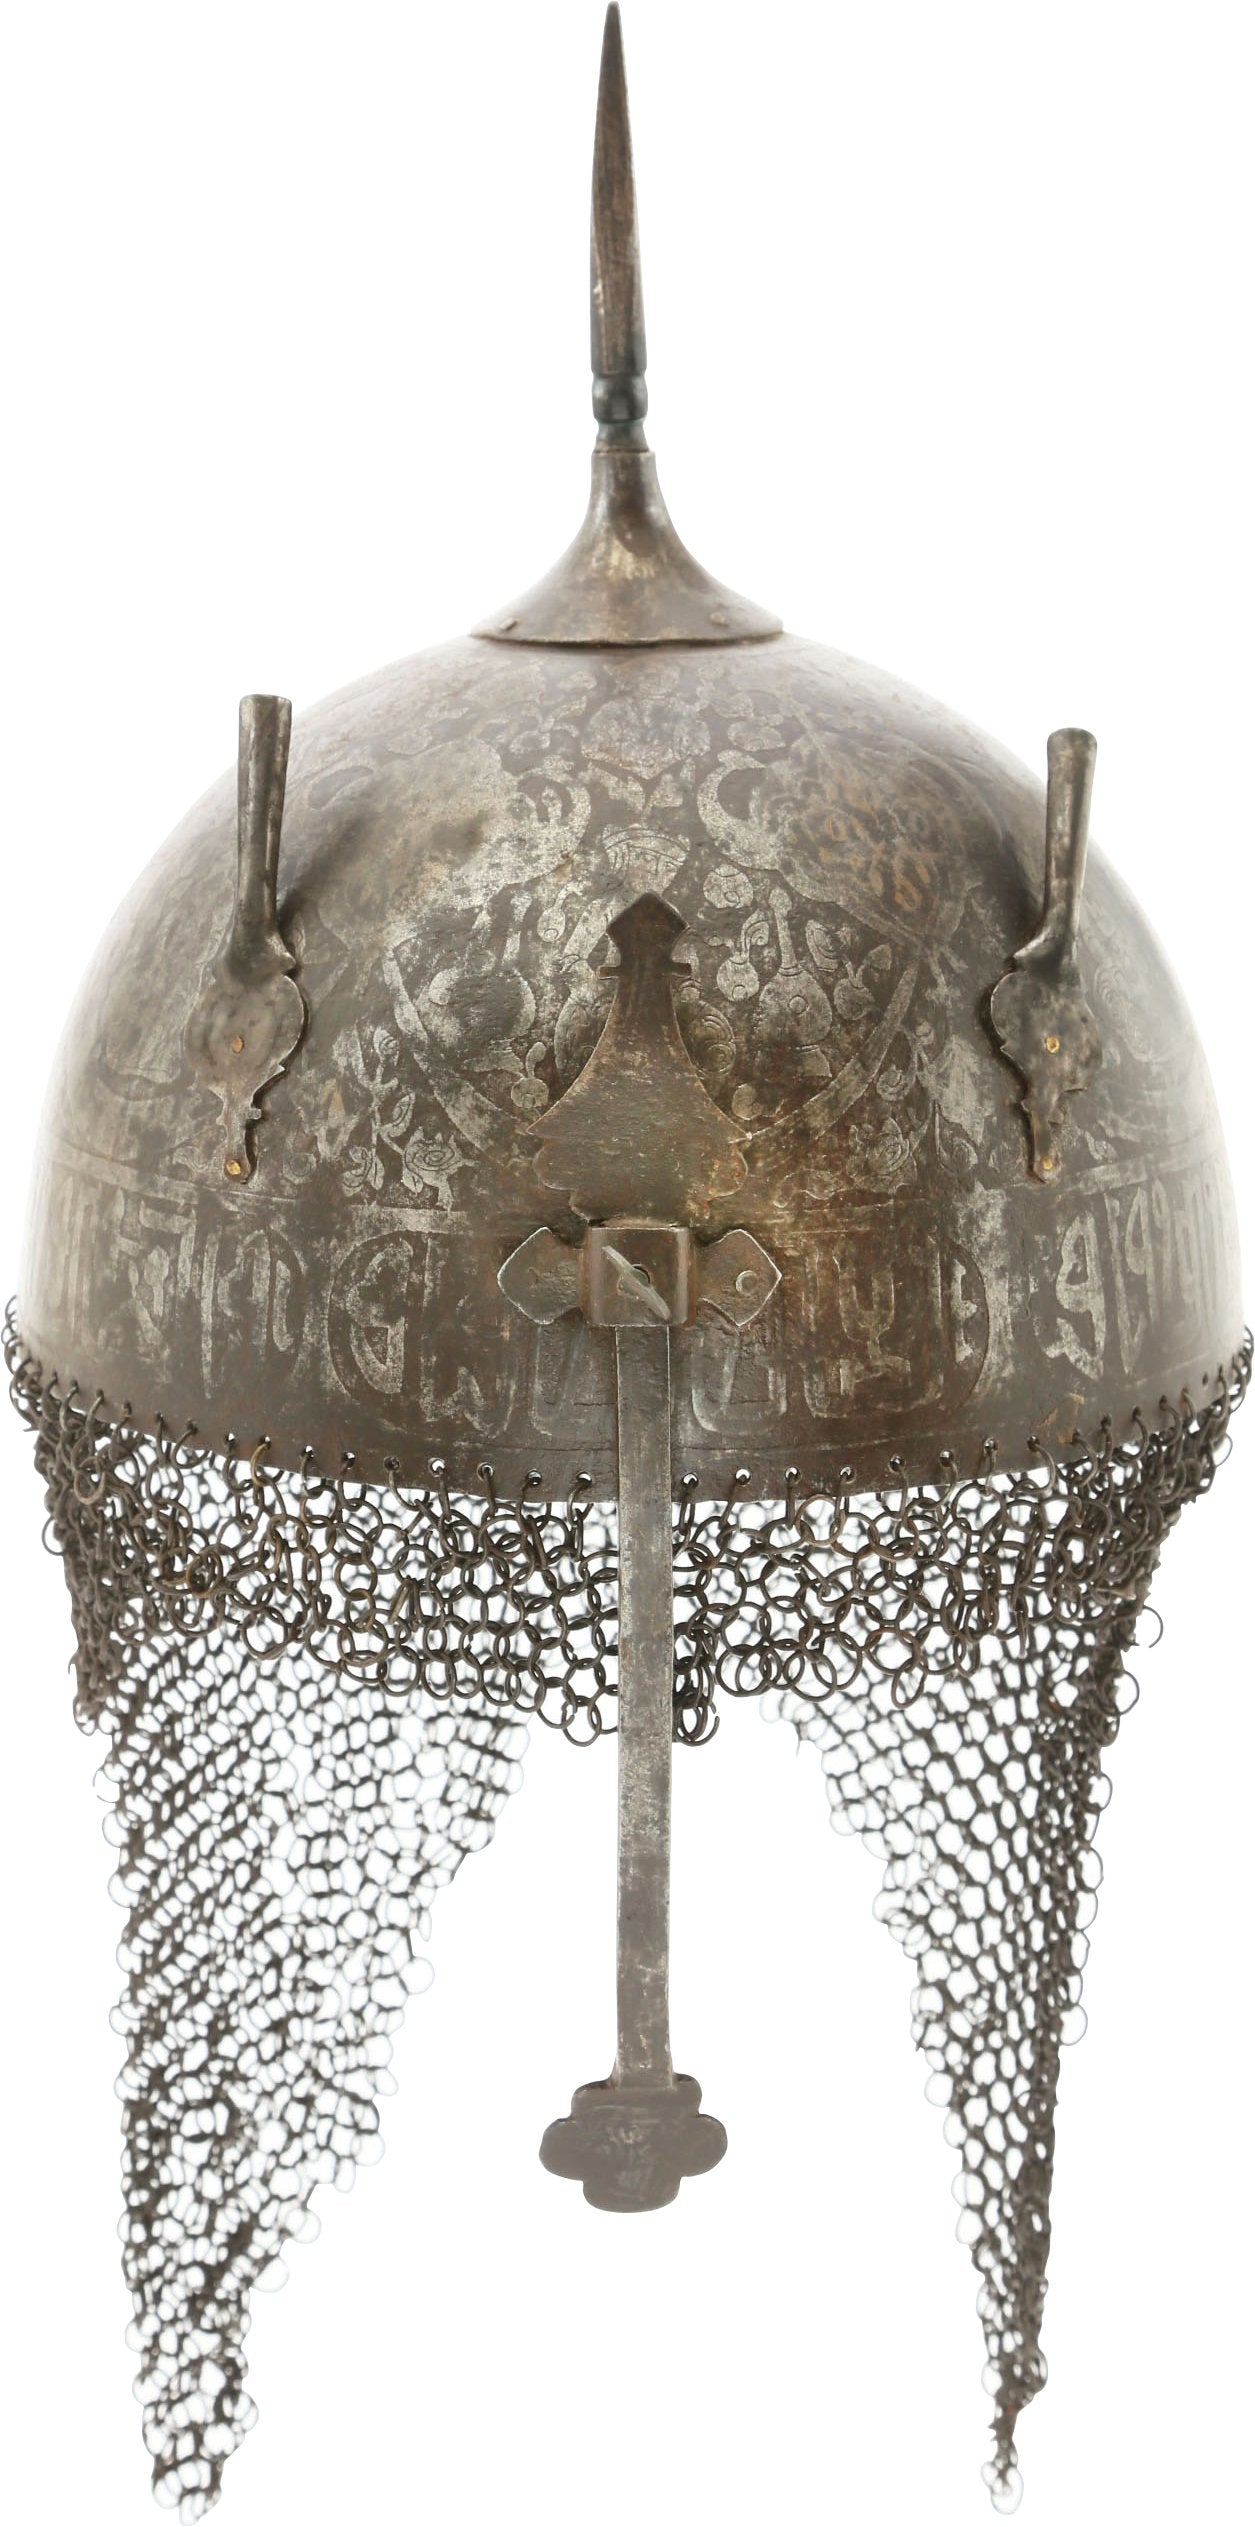 INDOPERSIAN HELMET KULAH KHUD - Fagan Arms